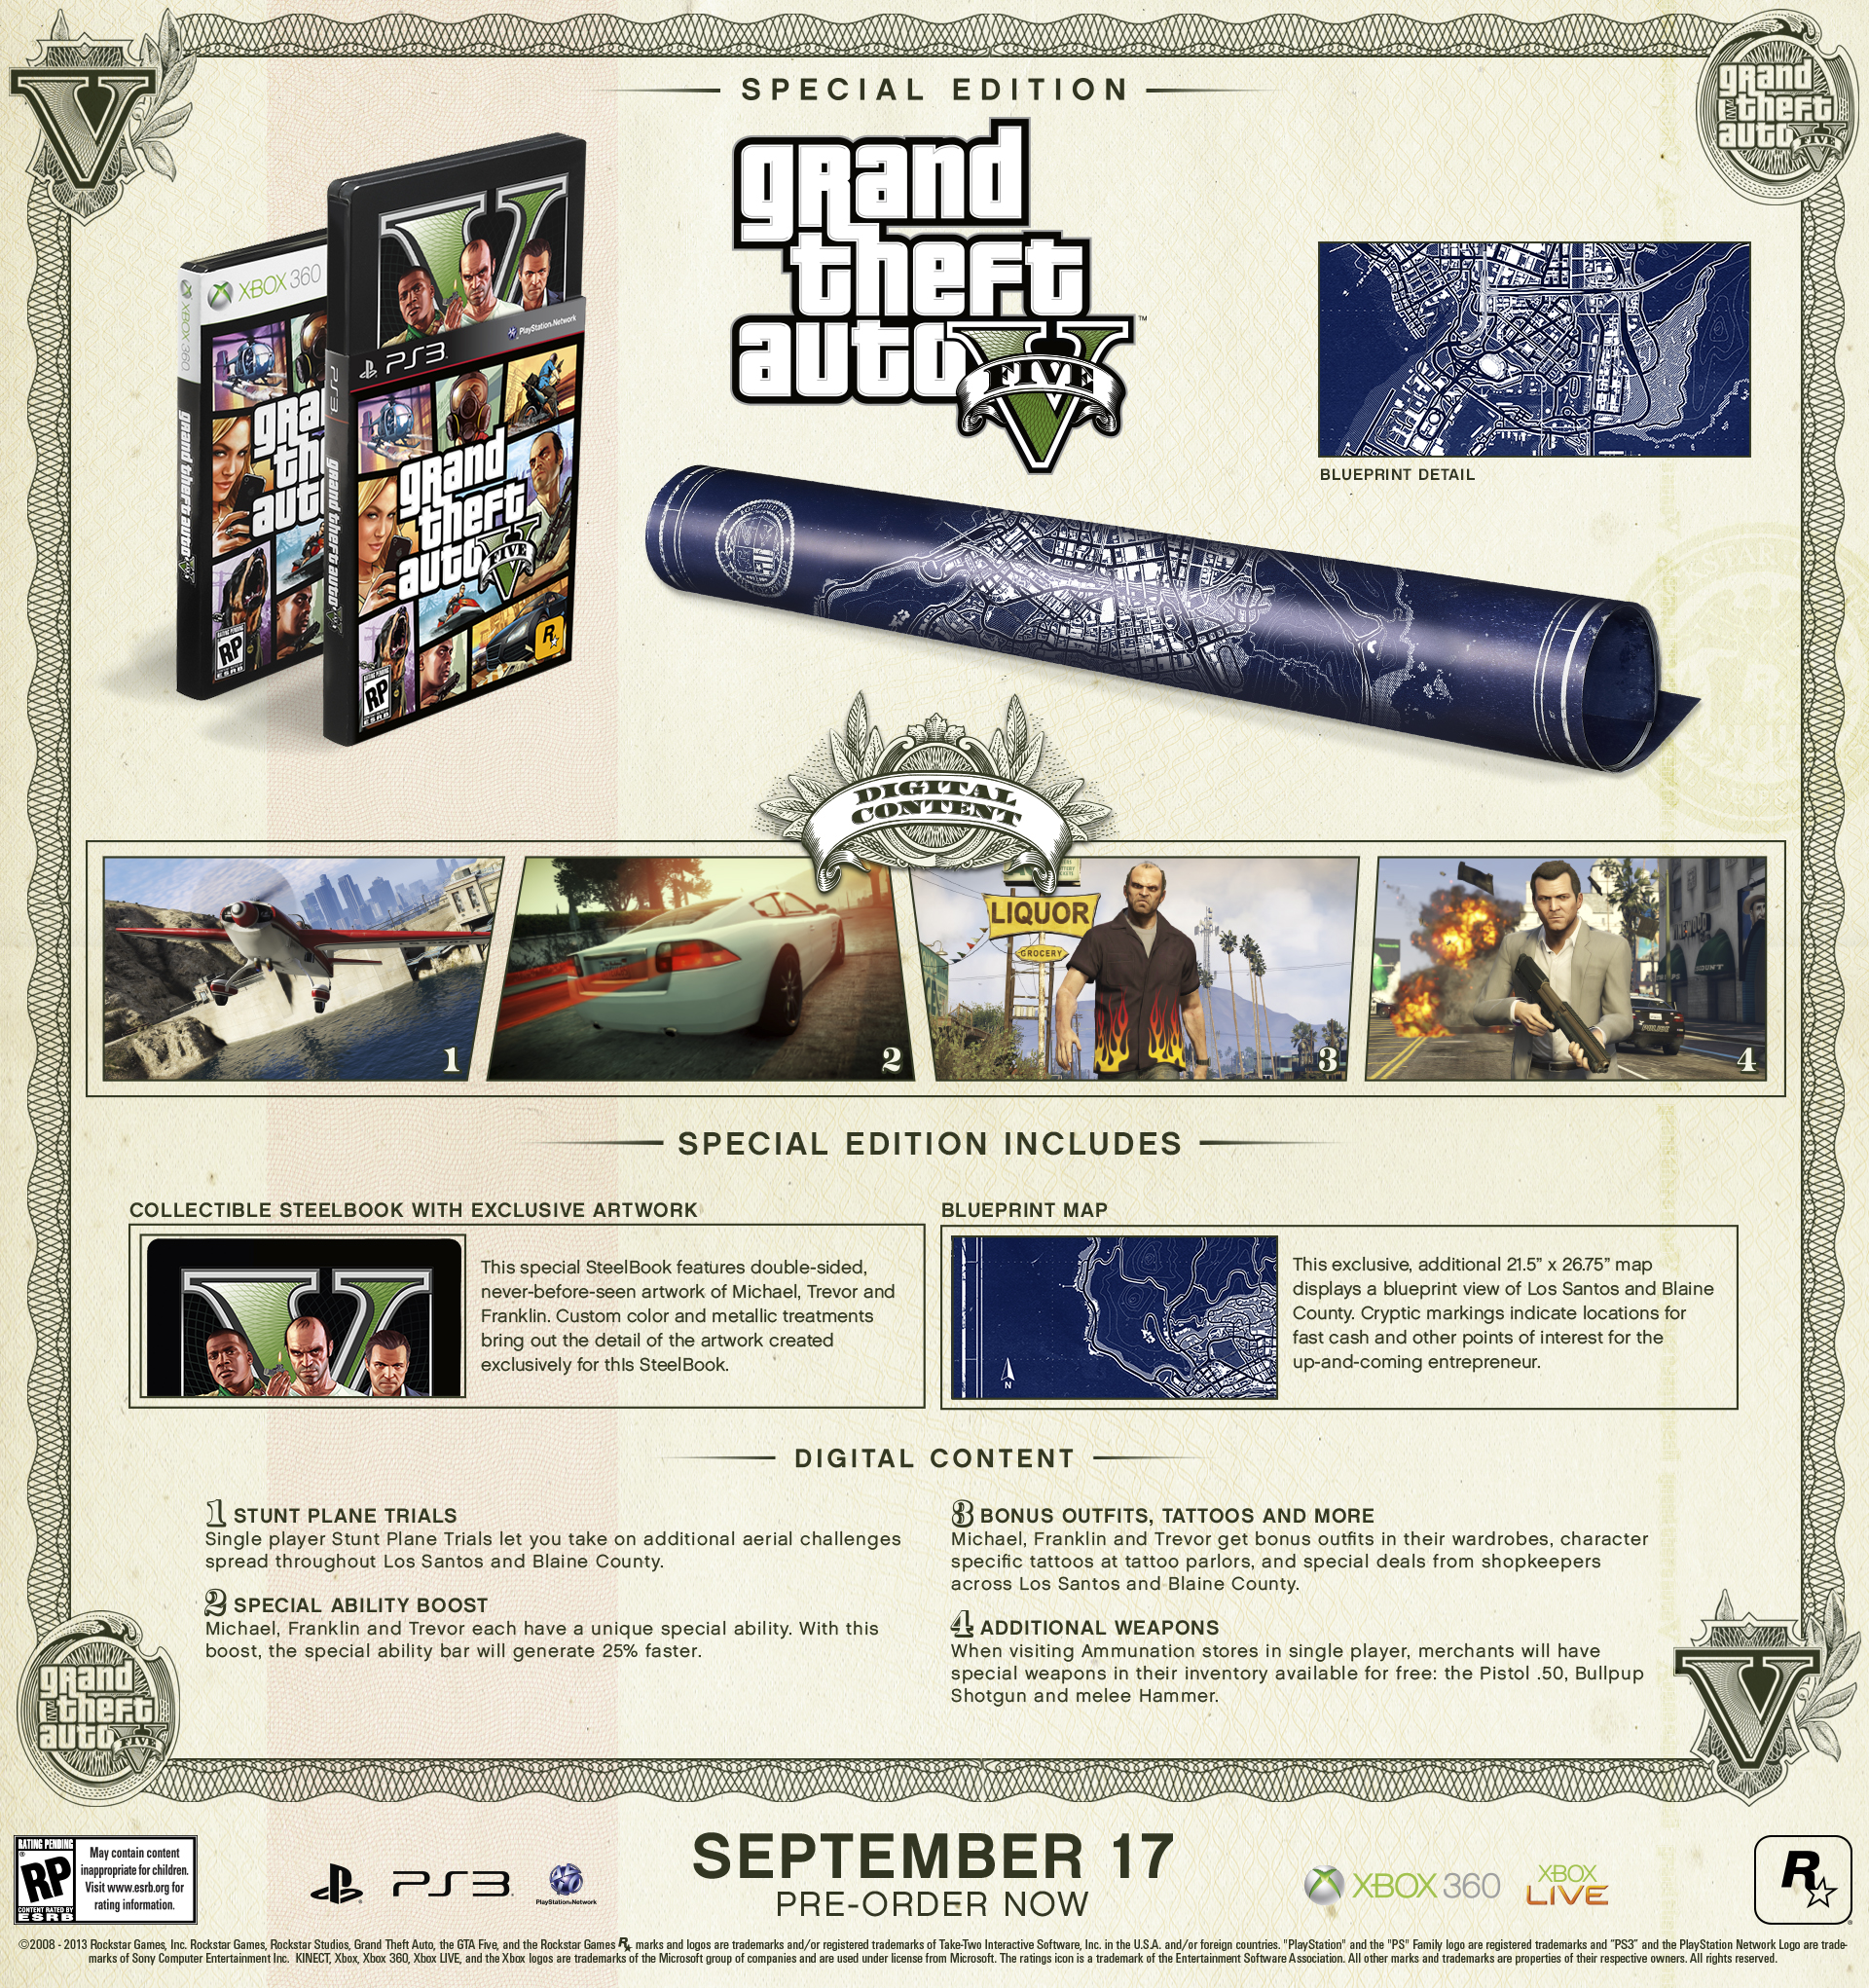 Gta Grand Theft Auto V 5 Ps3: Grand Theft Auto V Special Edition And Collector's Edition